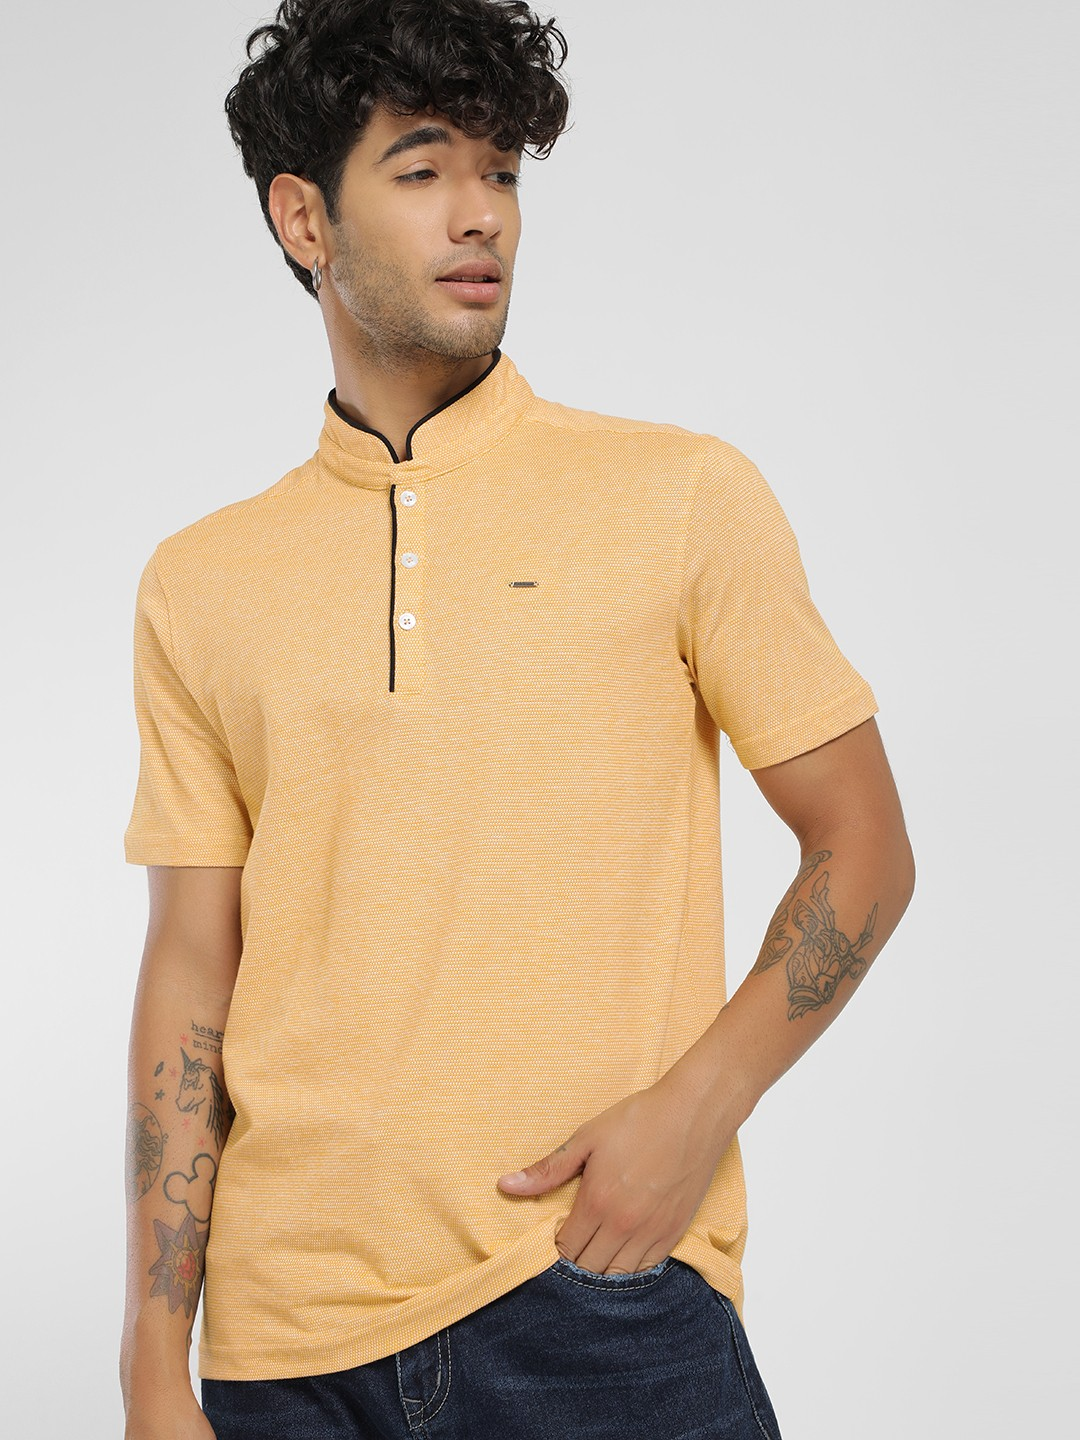 Lee Cooper Yellow Knitted Polo Shirt 1